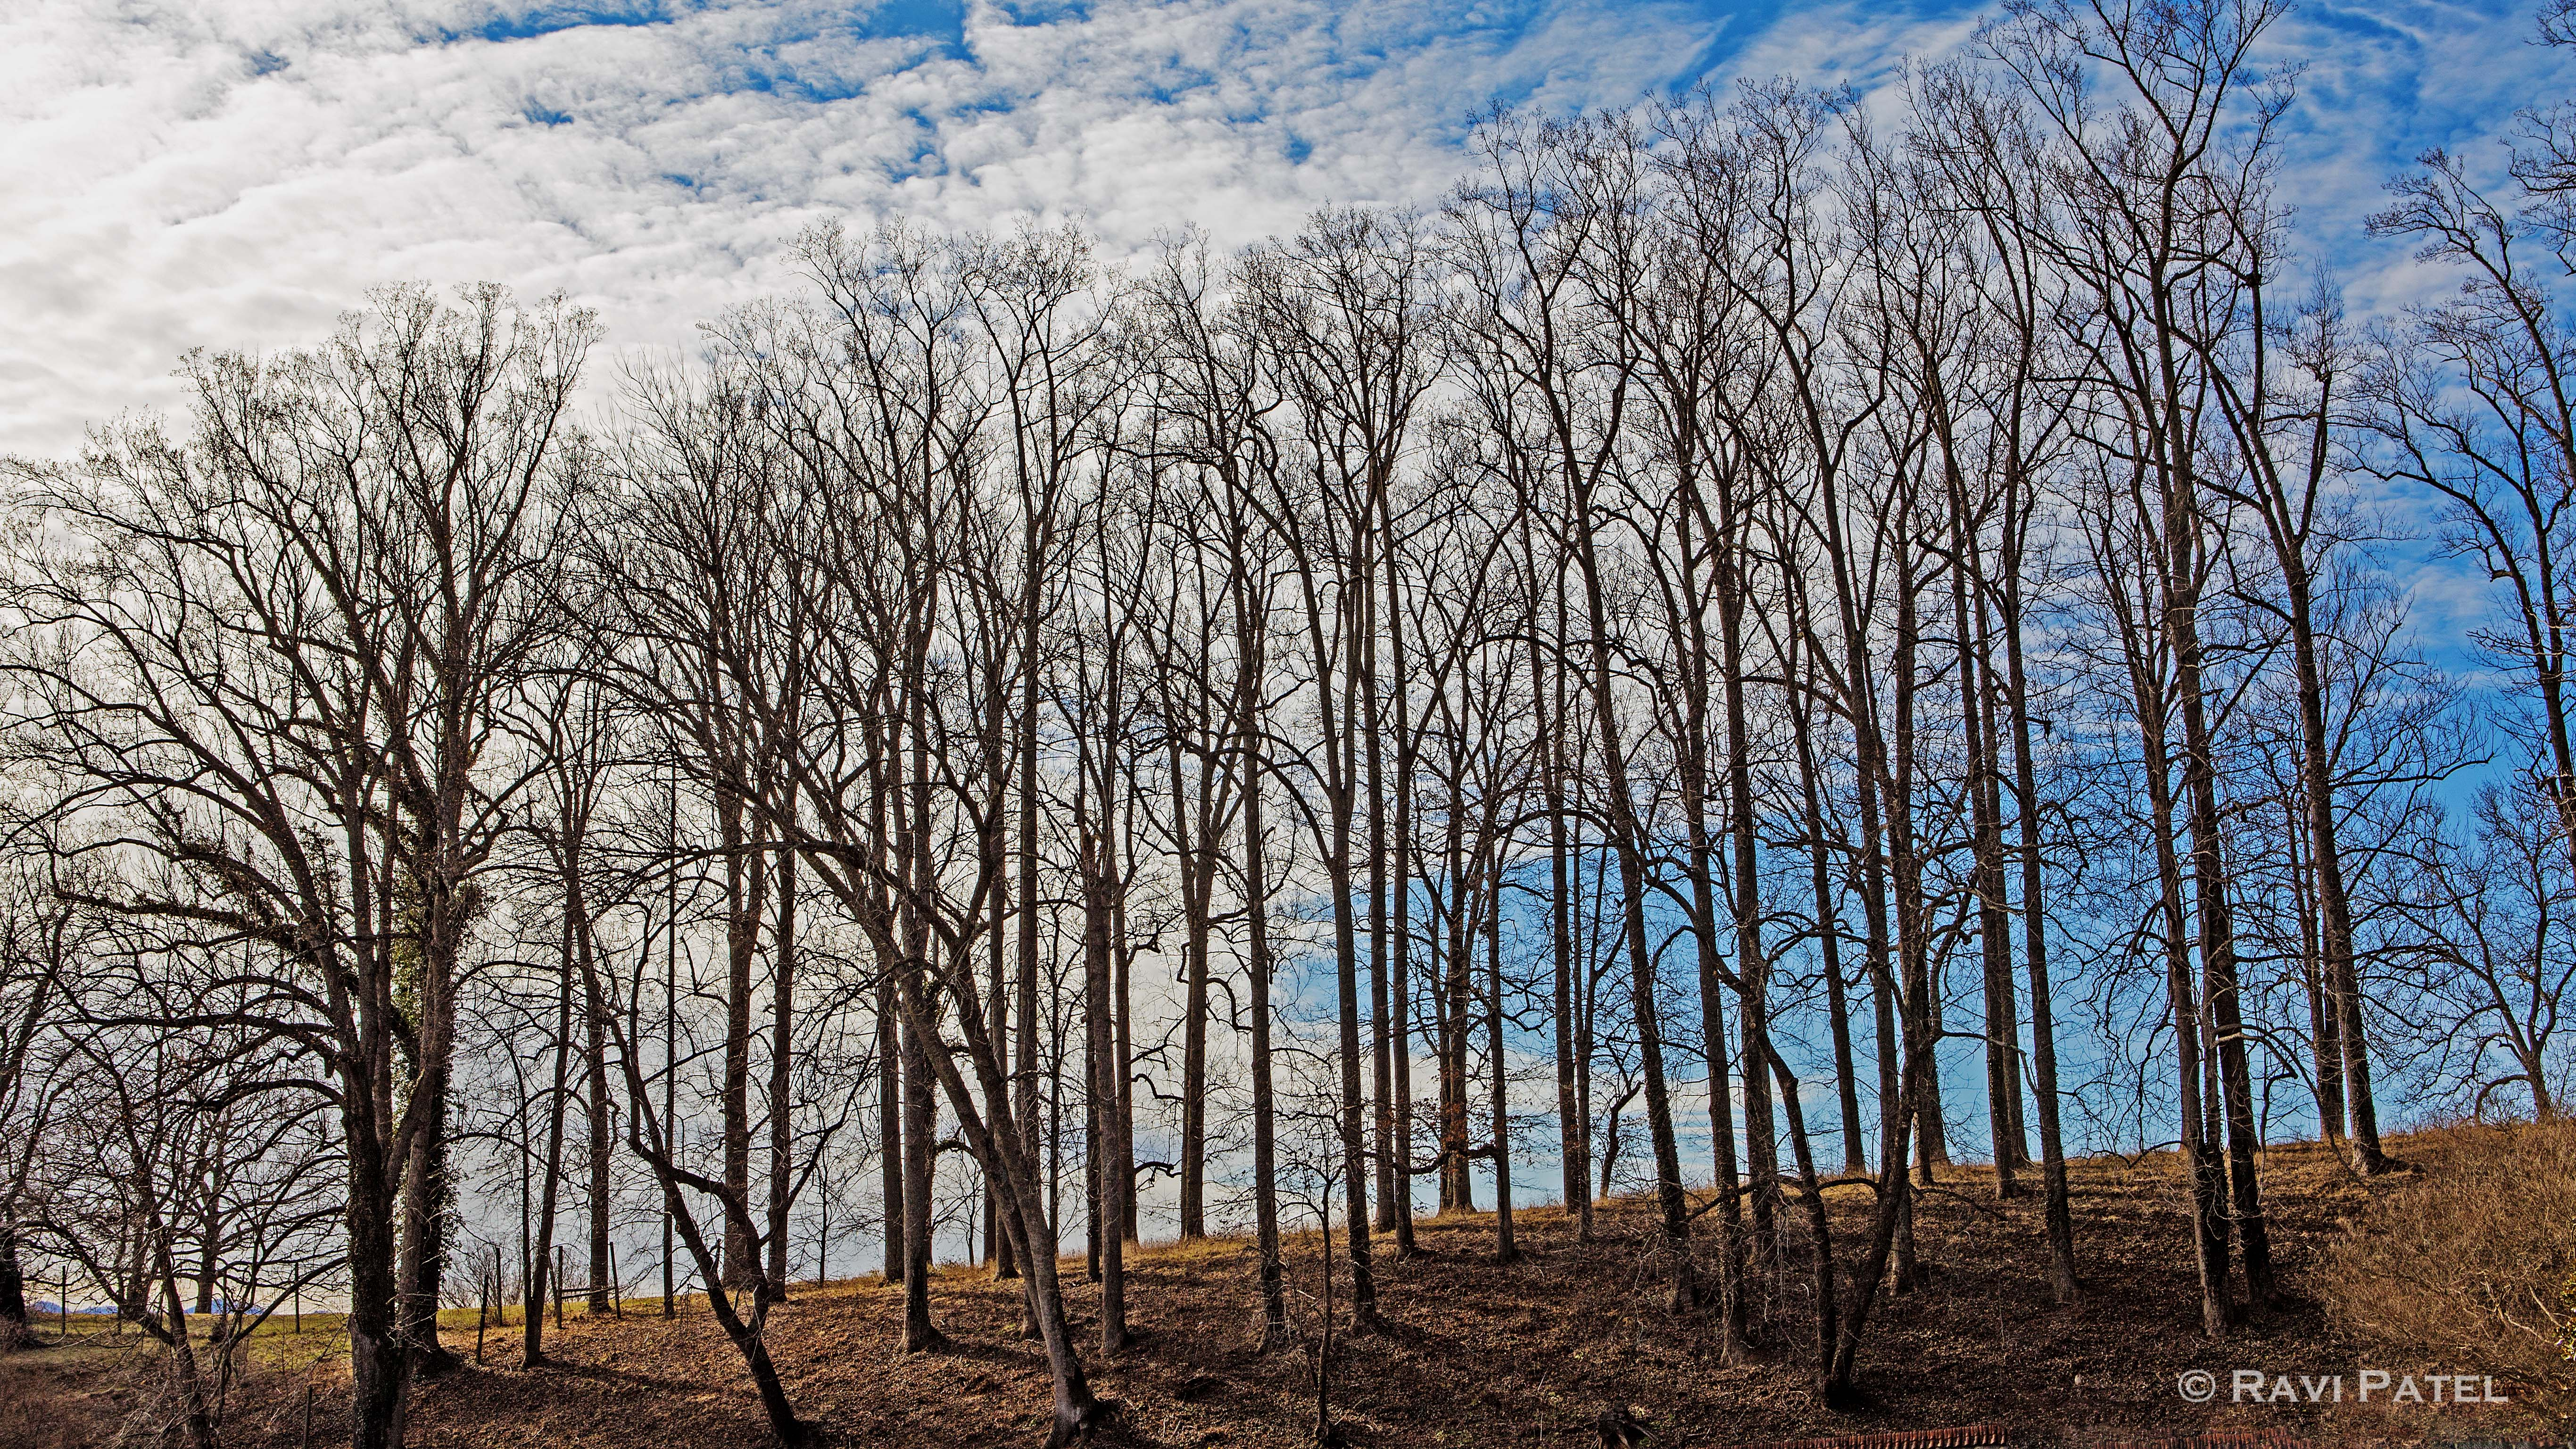 a row of bare trees photos by ravi